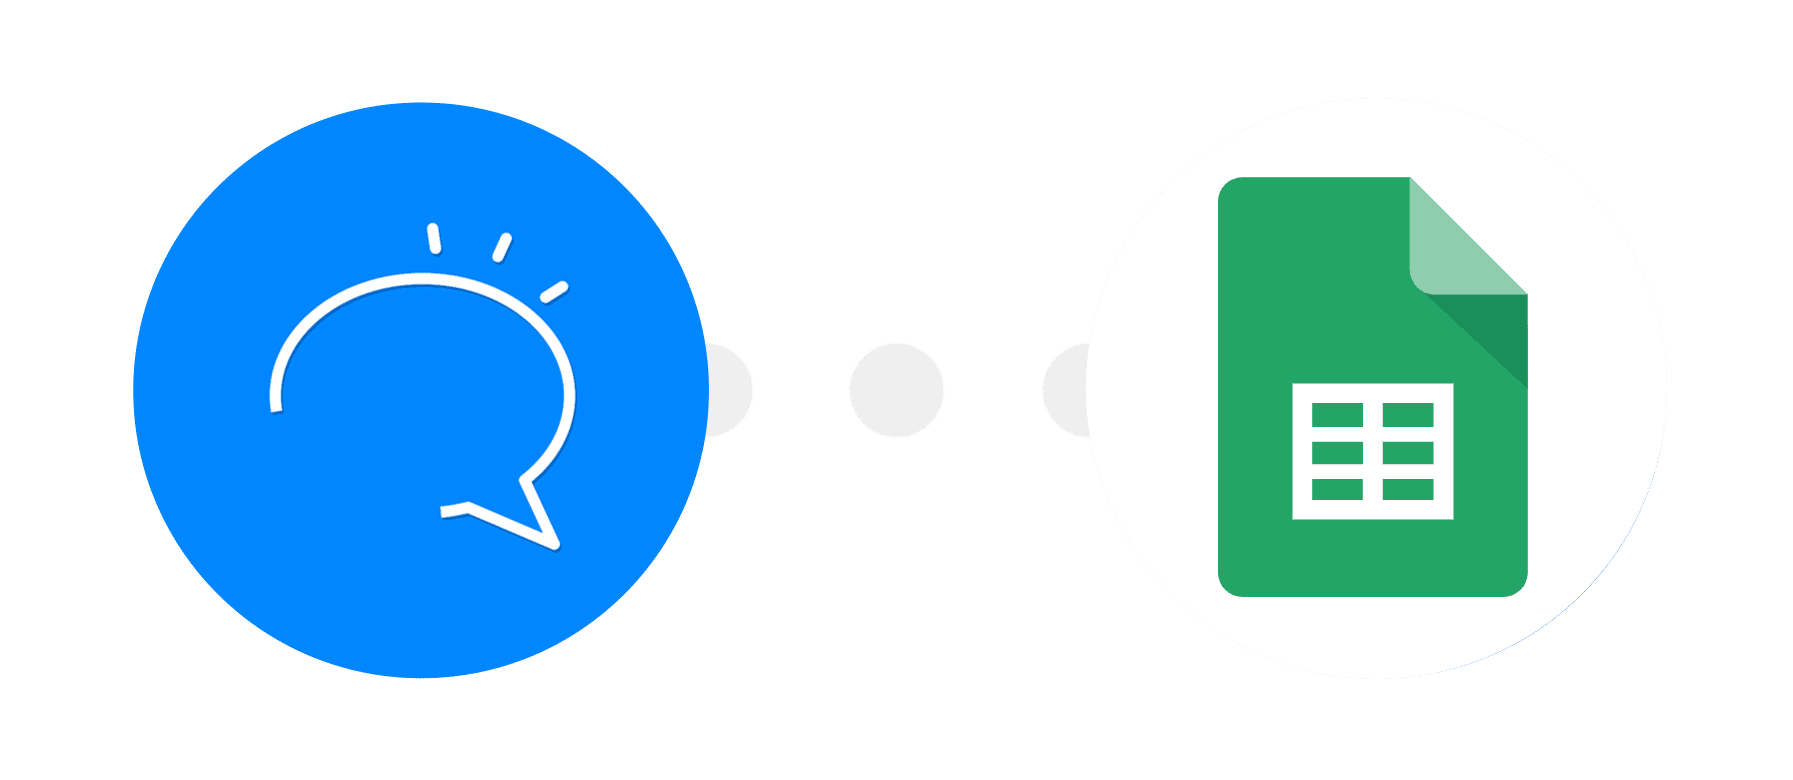 Google Sheets integrates with Clever Messenger